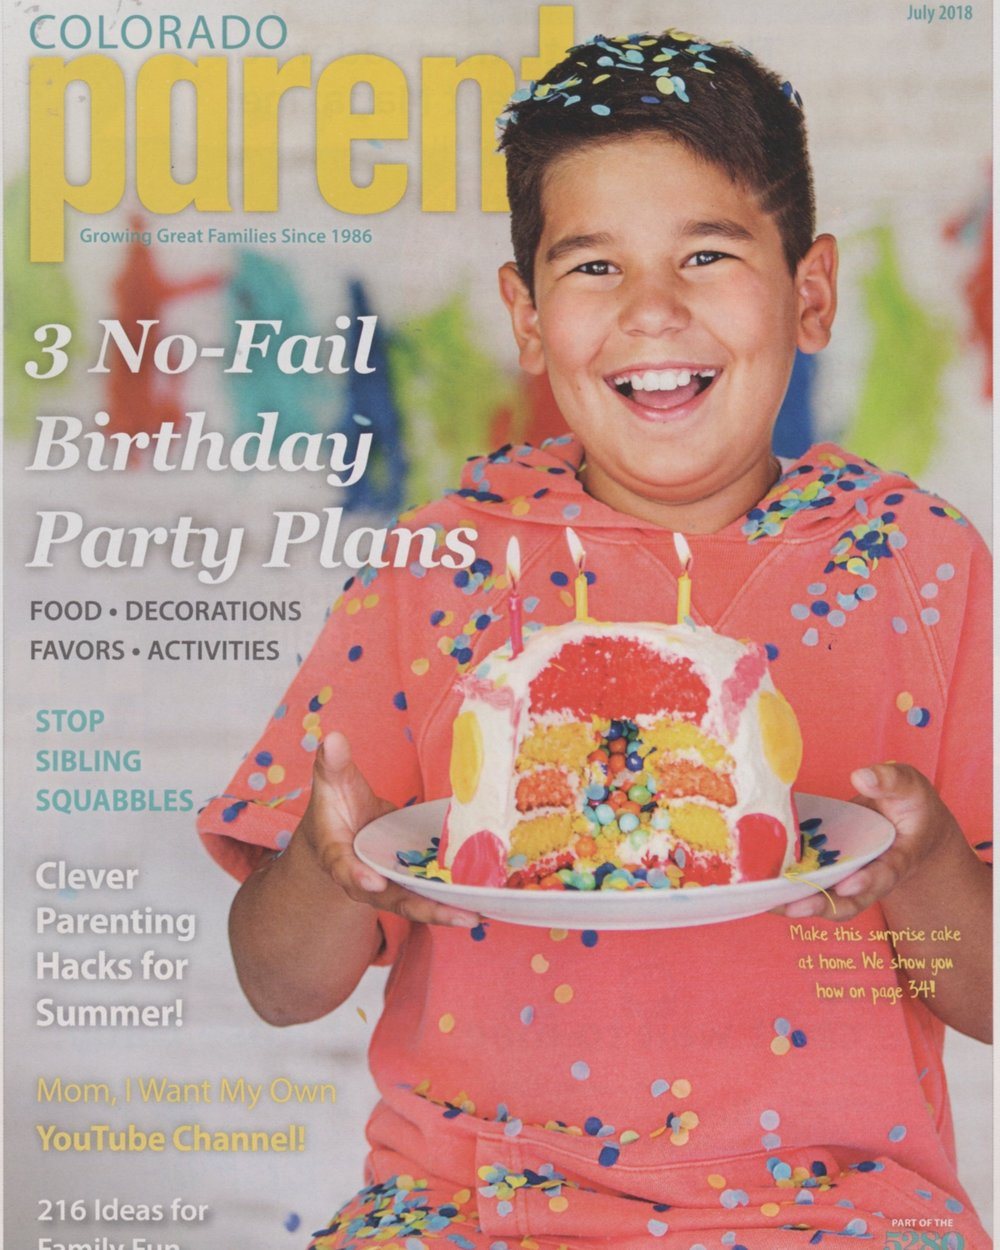 Allergies and Birthday Parties   Colorado Parent Magazine  July 2018 Issue